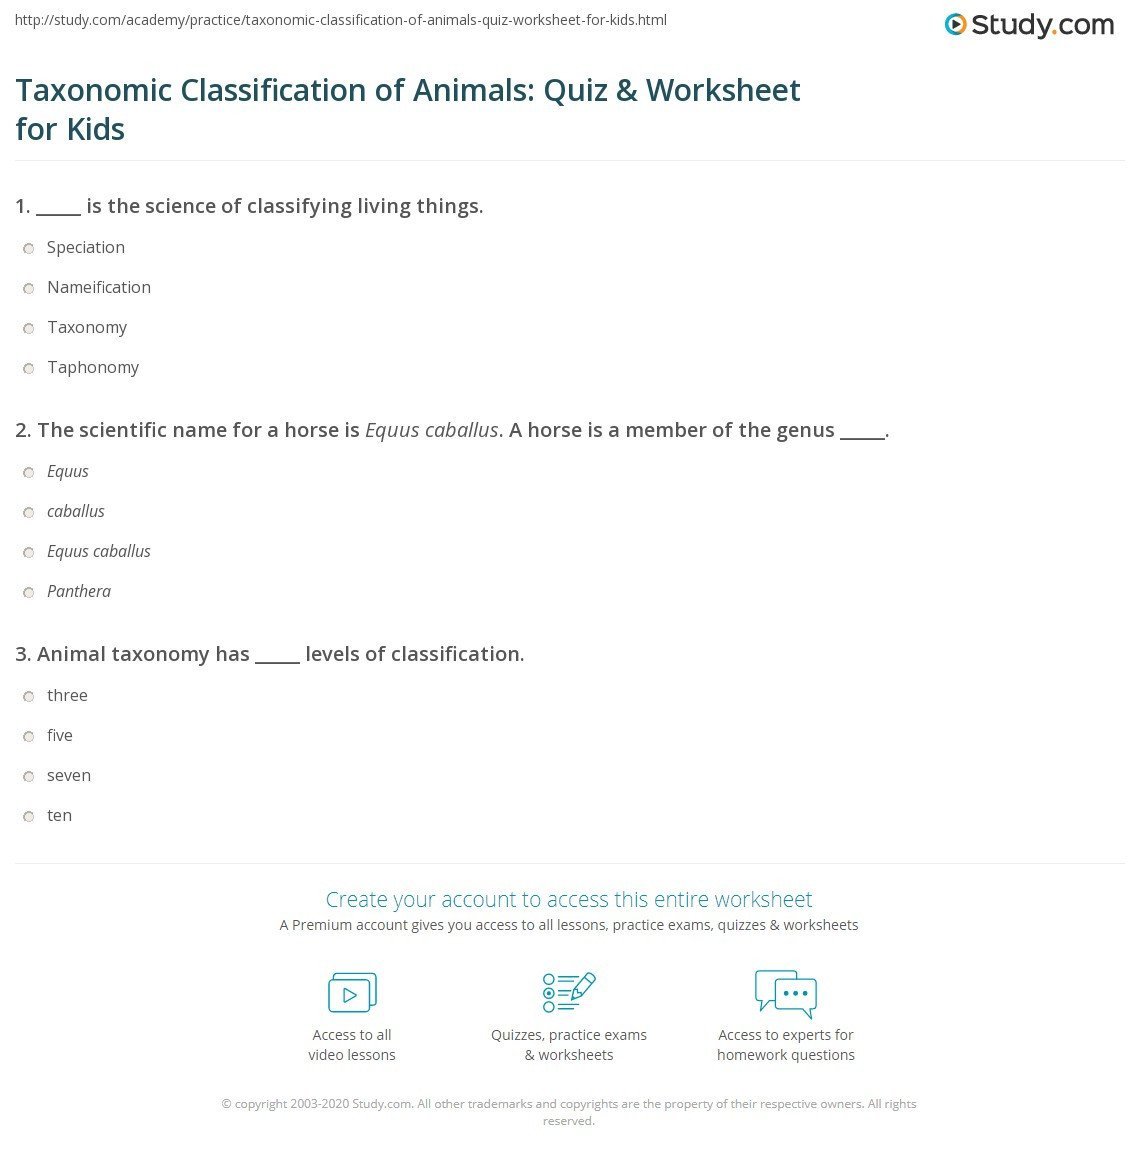 Classification Of Animals Worksheet Taxonomic Classification Of Animals Quiz & Worksheet for